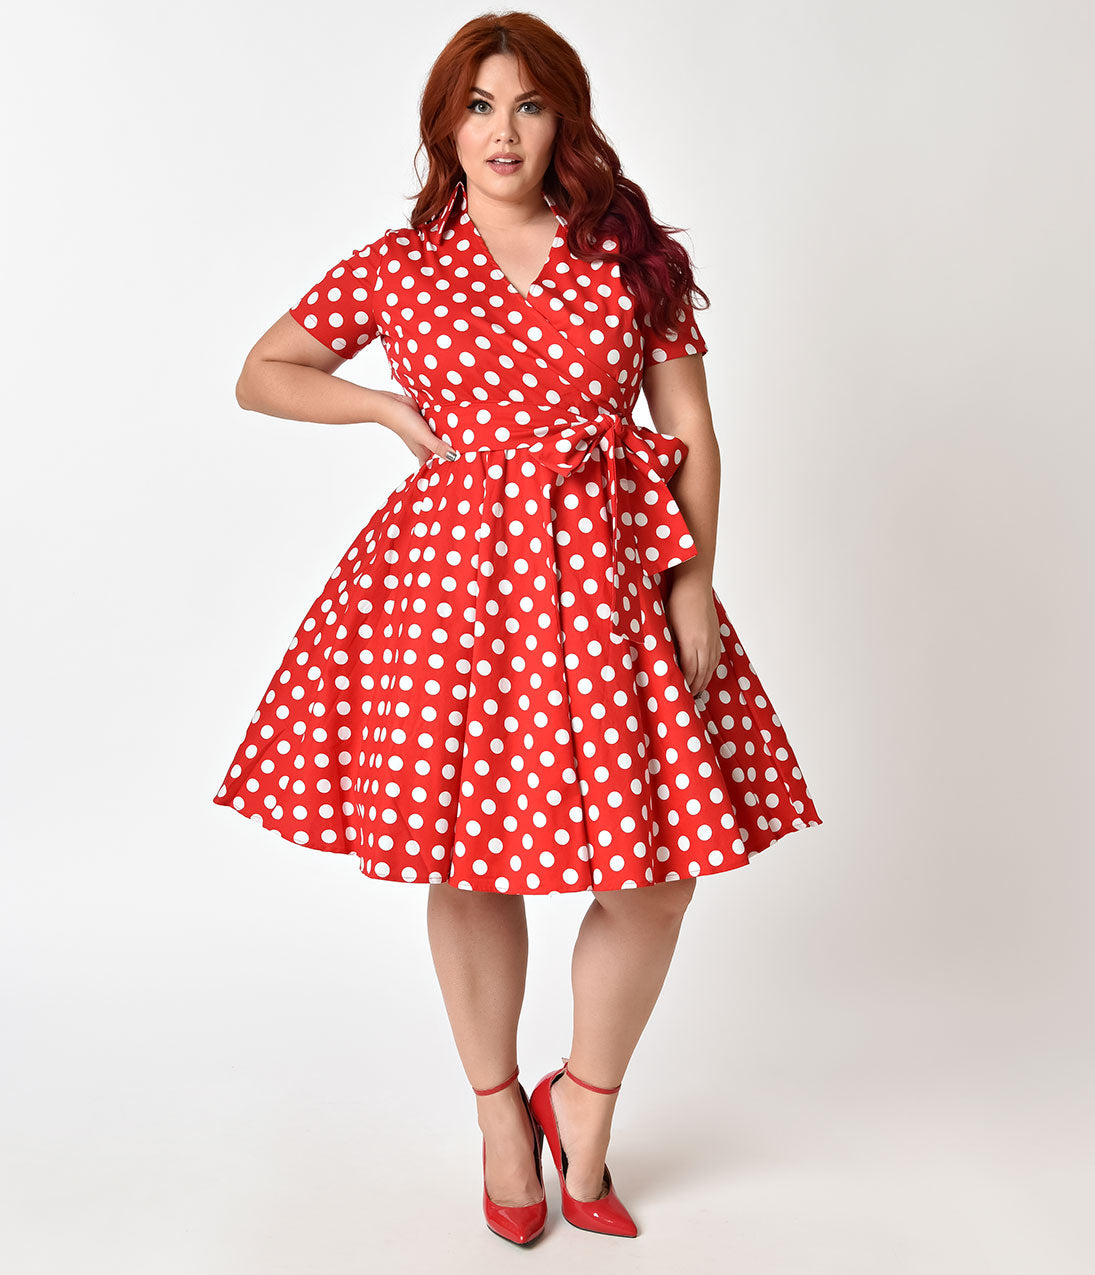 Plus Size Polka Dot Dresses – Vintage 40s, 50s, 60s Dresses Plus Size 1950s Style Red  Ivory Polka Dot Short Sleeve Flare Dress $68.00 AT vintagedancer.com